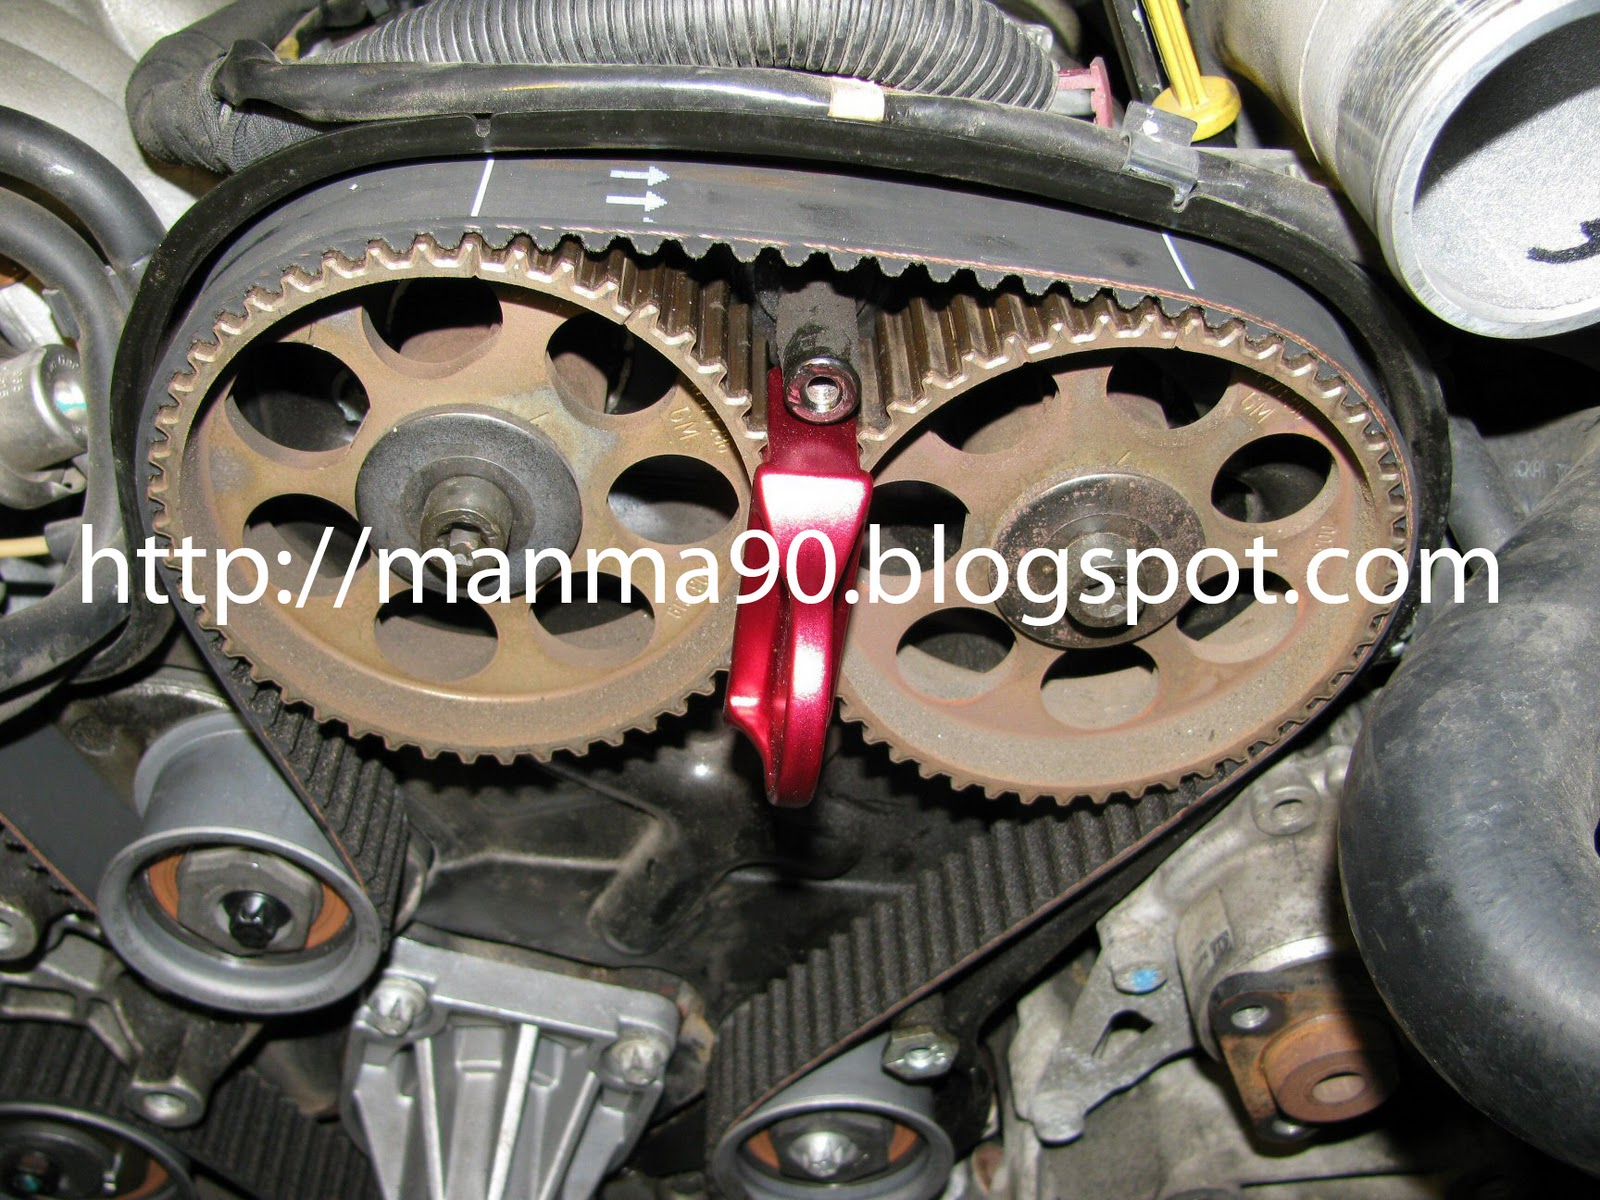 220px Replacing a timing belt moreover Replace timing chain on Renault Scenic 2 0 16V 2003 as well Replace timing chain on Fiat Ducato 2 3 2008 also V8 audi timing chain failure repair 1 together with mmfp 0712 07 z347 stroker small block fordtiming chain together with 11310 28081 Timing Chain Cover 1c together with Timing belt chain vehicles 1 likewise 420 100 1 in addition  in addition 32 timing belt vs chain together with Timing marks lined up sm. on rep timing belt with chain